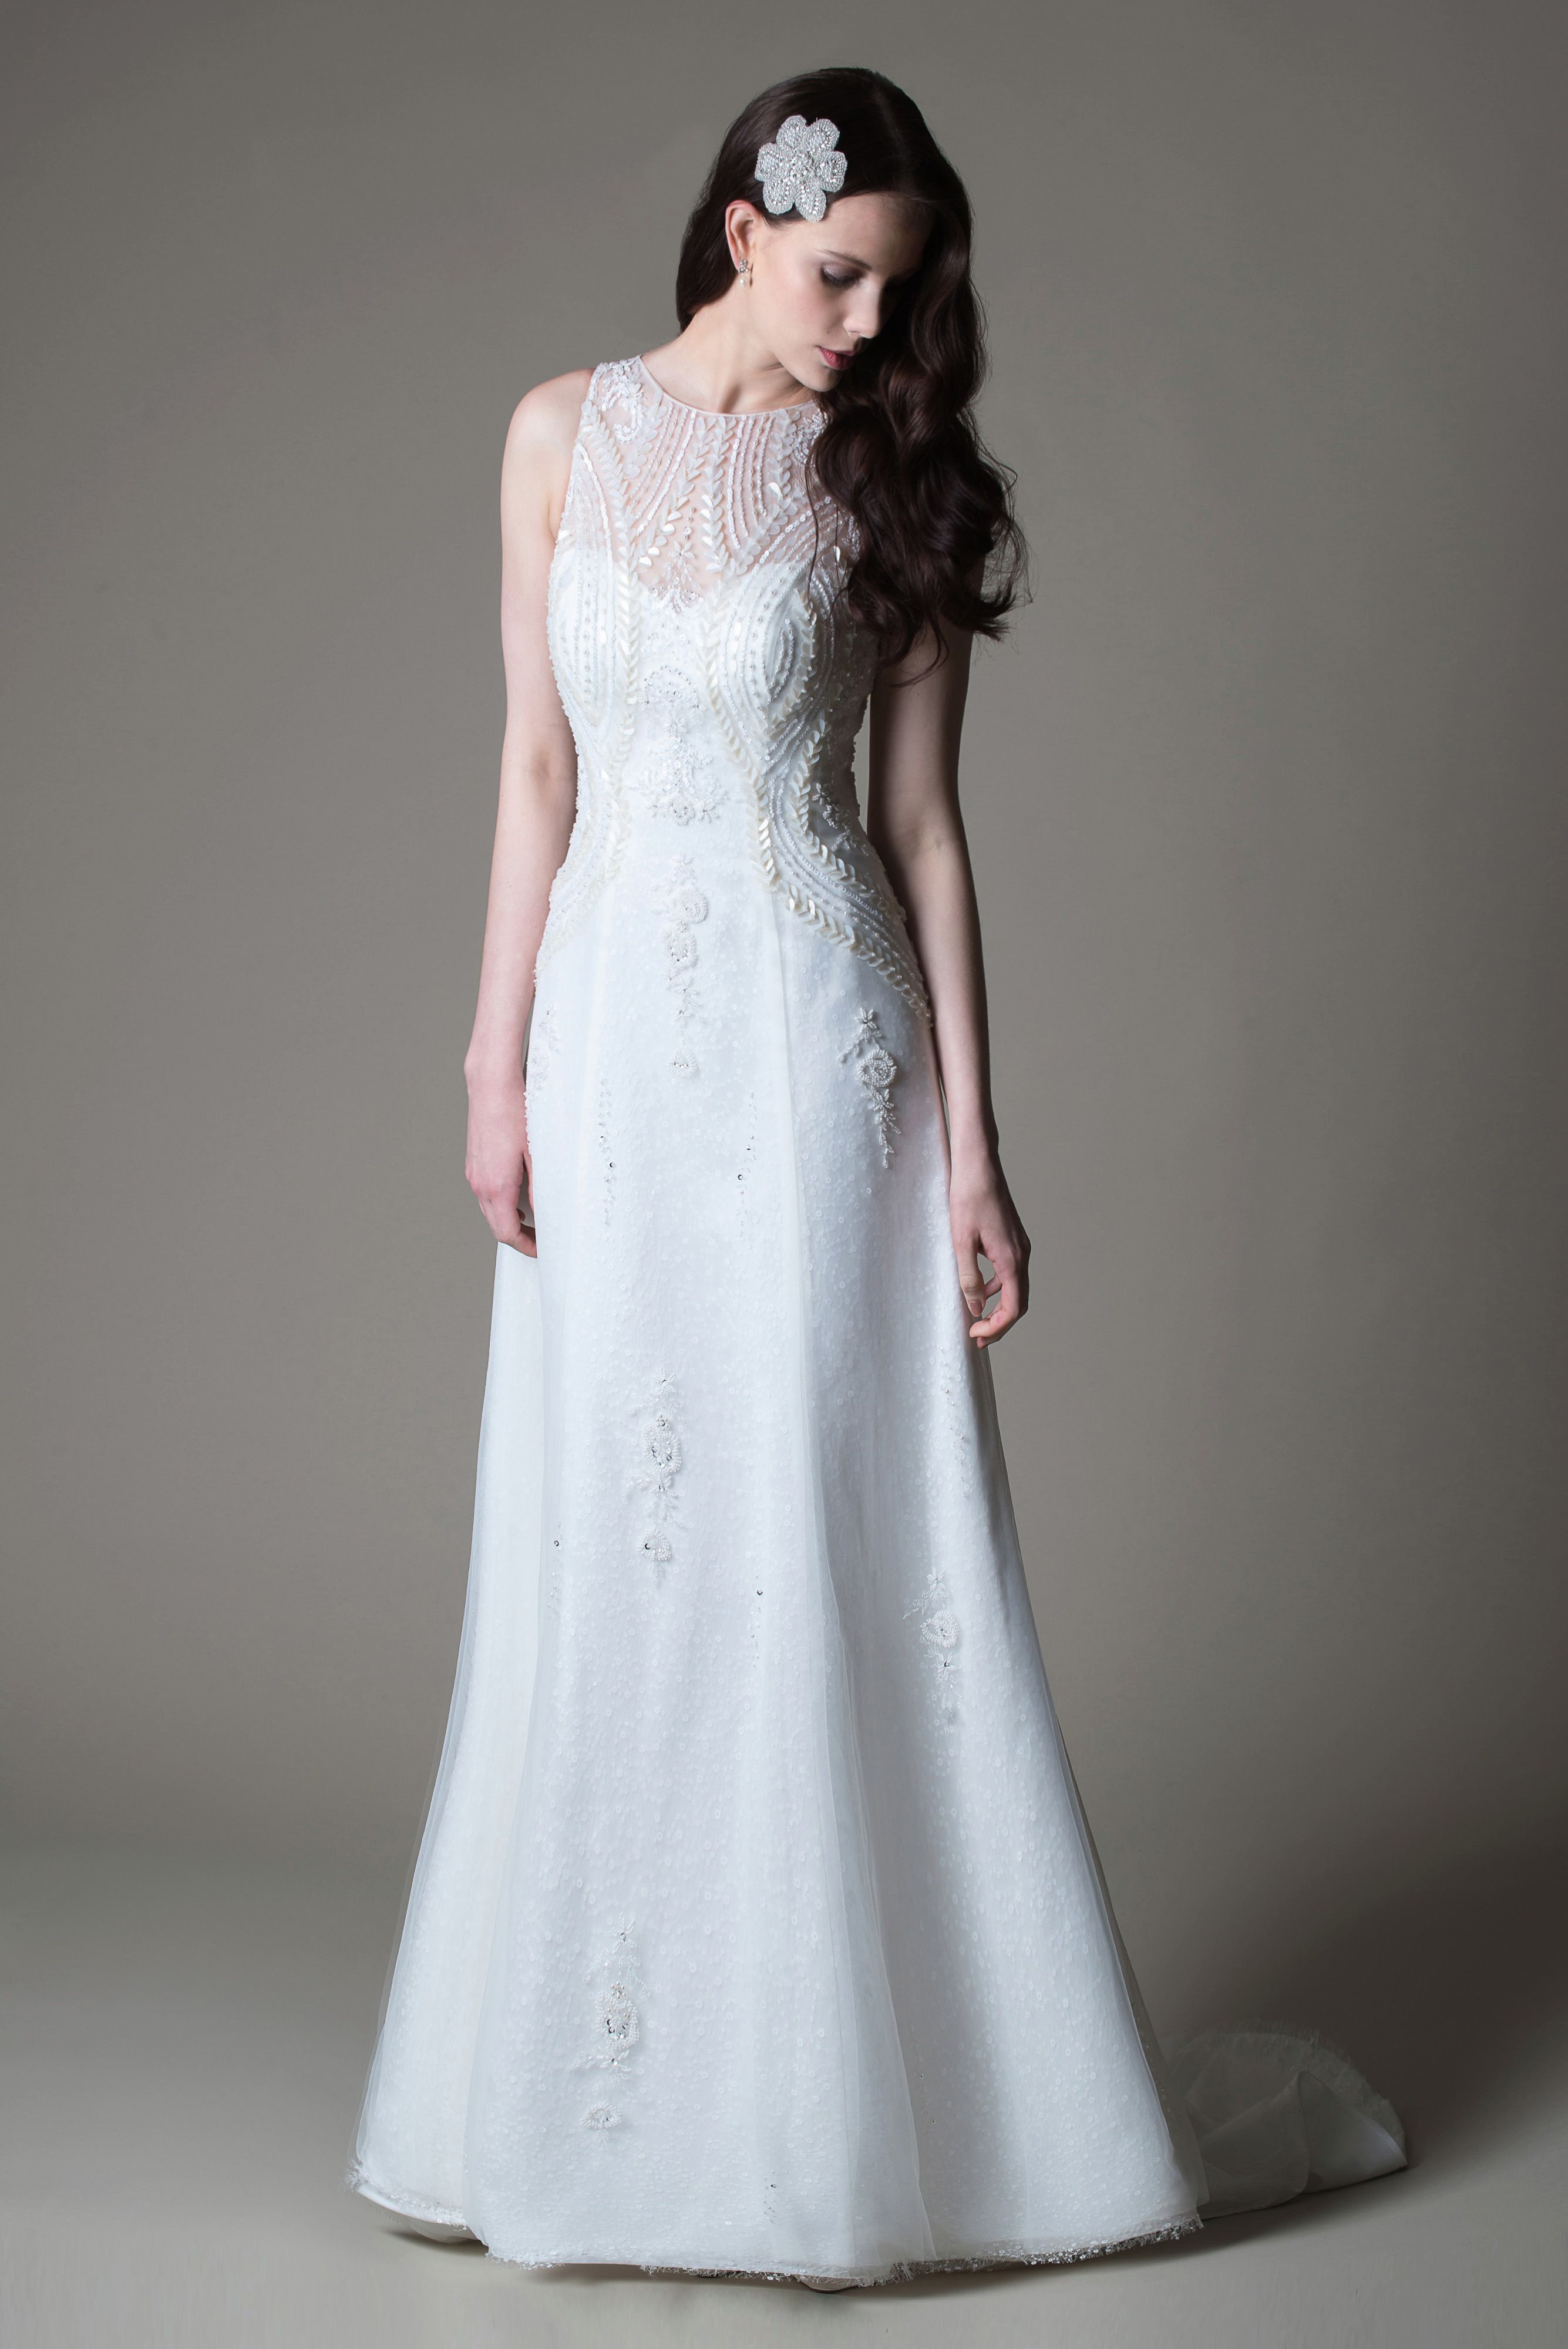 Loretta dress pinterest wedding dresses bridal and wedding gowns